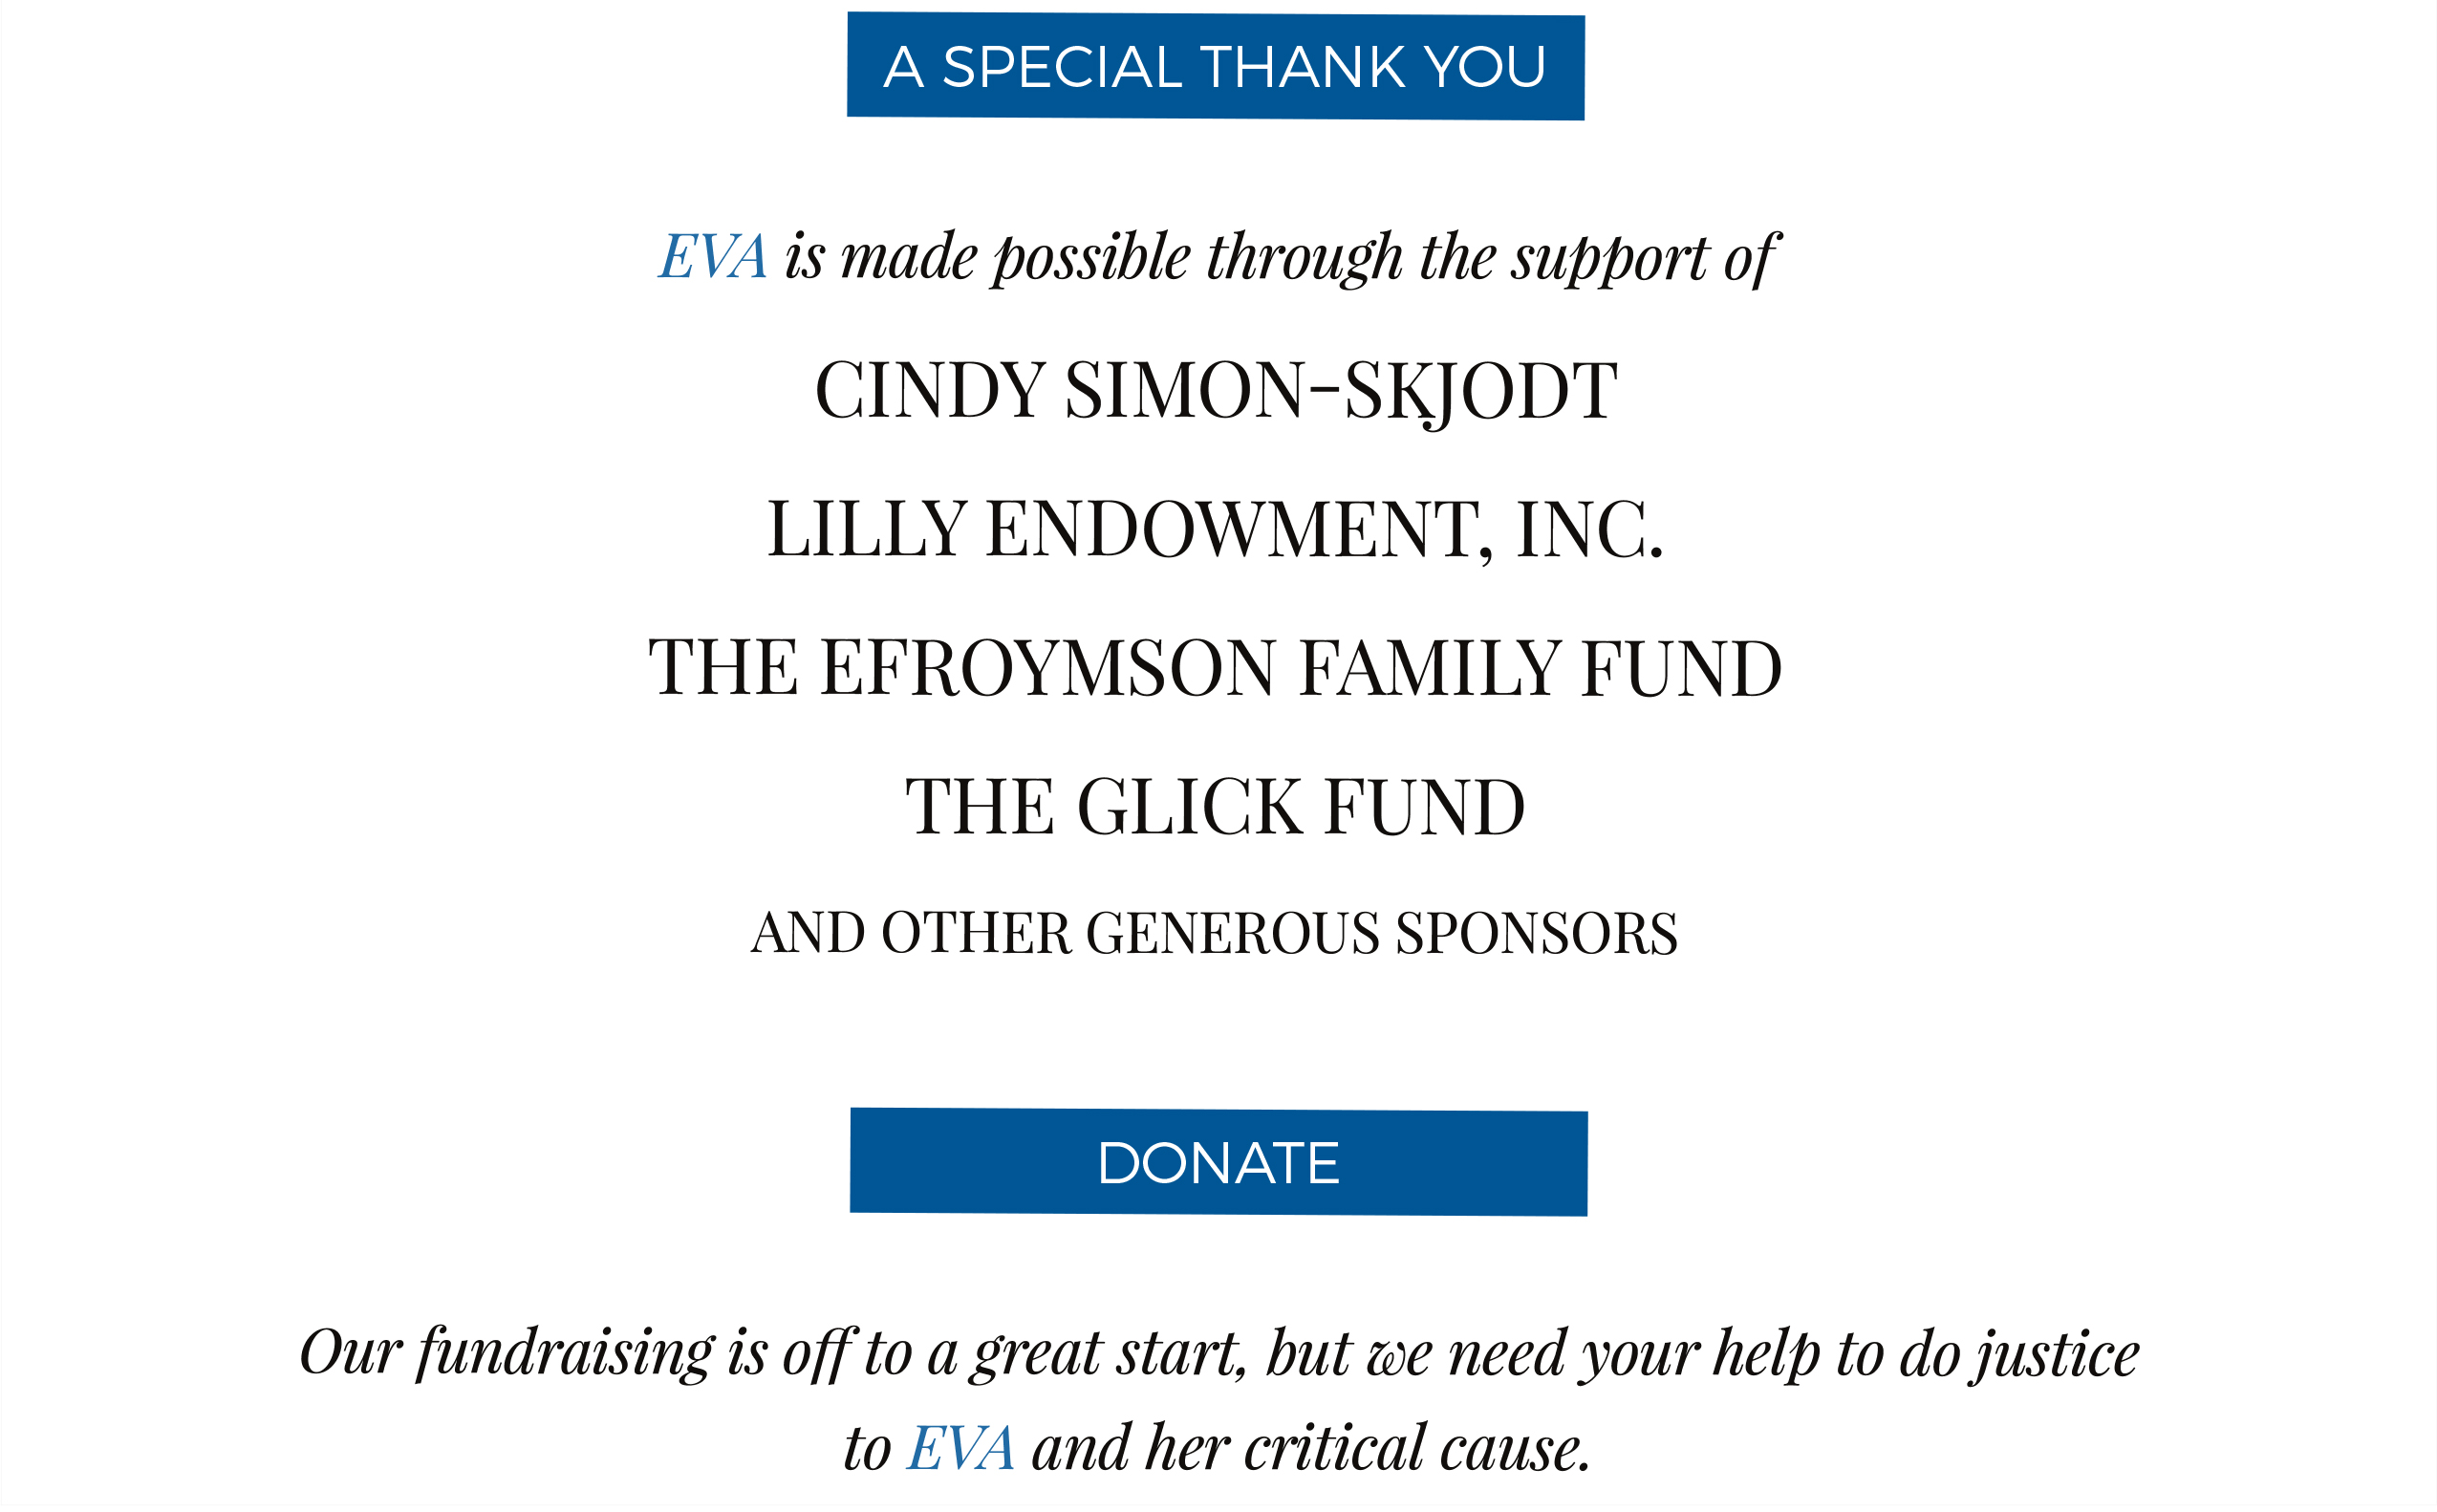 Eva is made possible through the support of Cindy Simon-Skjodt, Lilly Endowment, Inc., The Efroymson Family Fund, The Glick Fund and other generous sponsors.